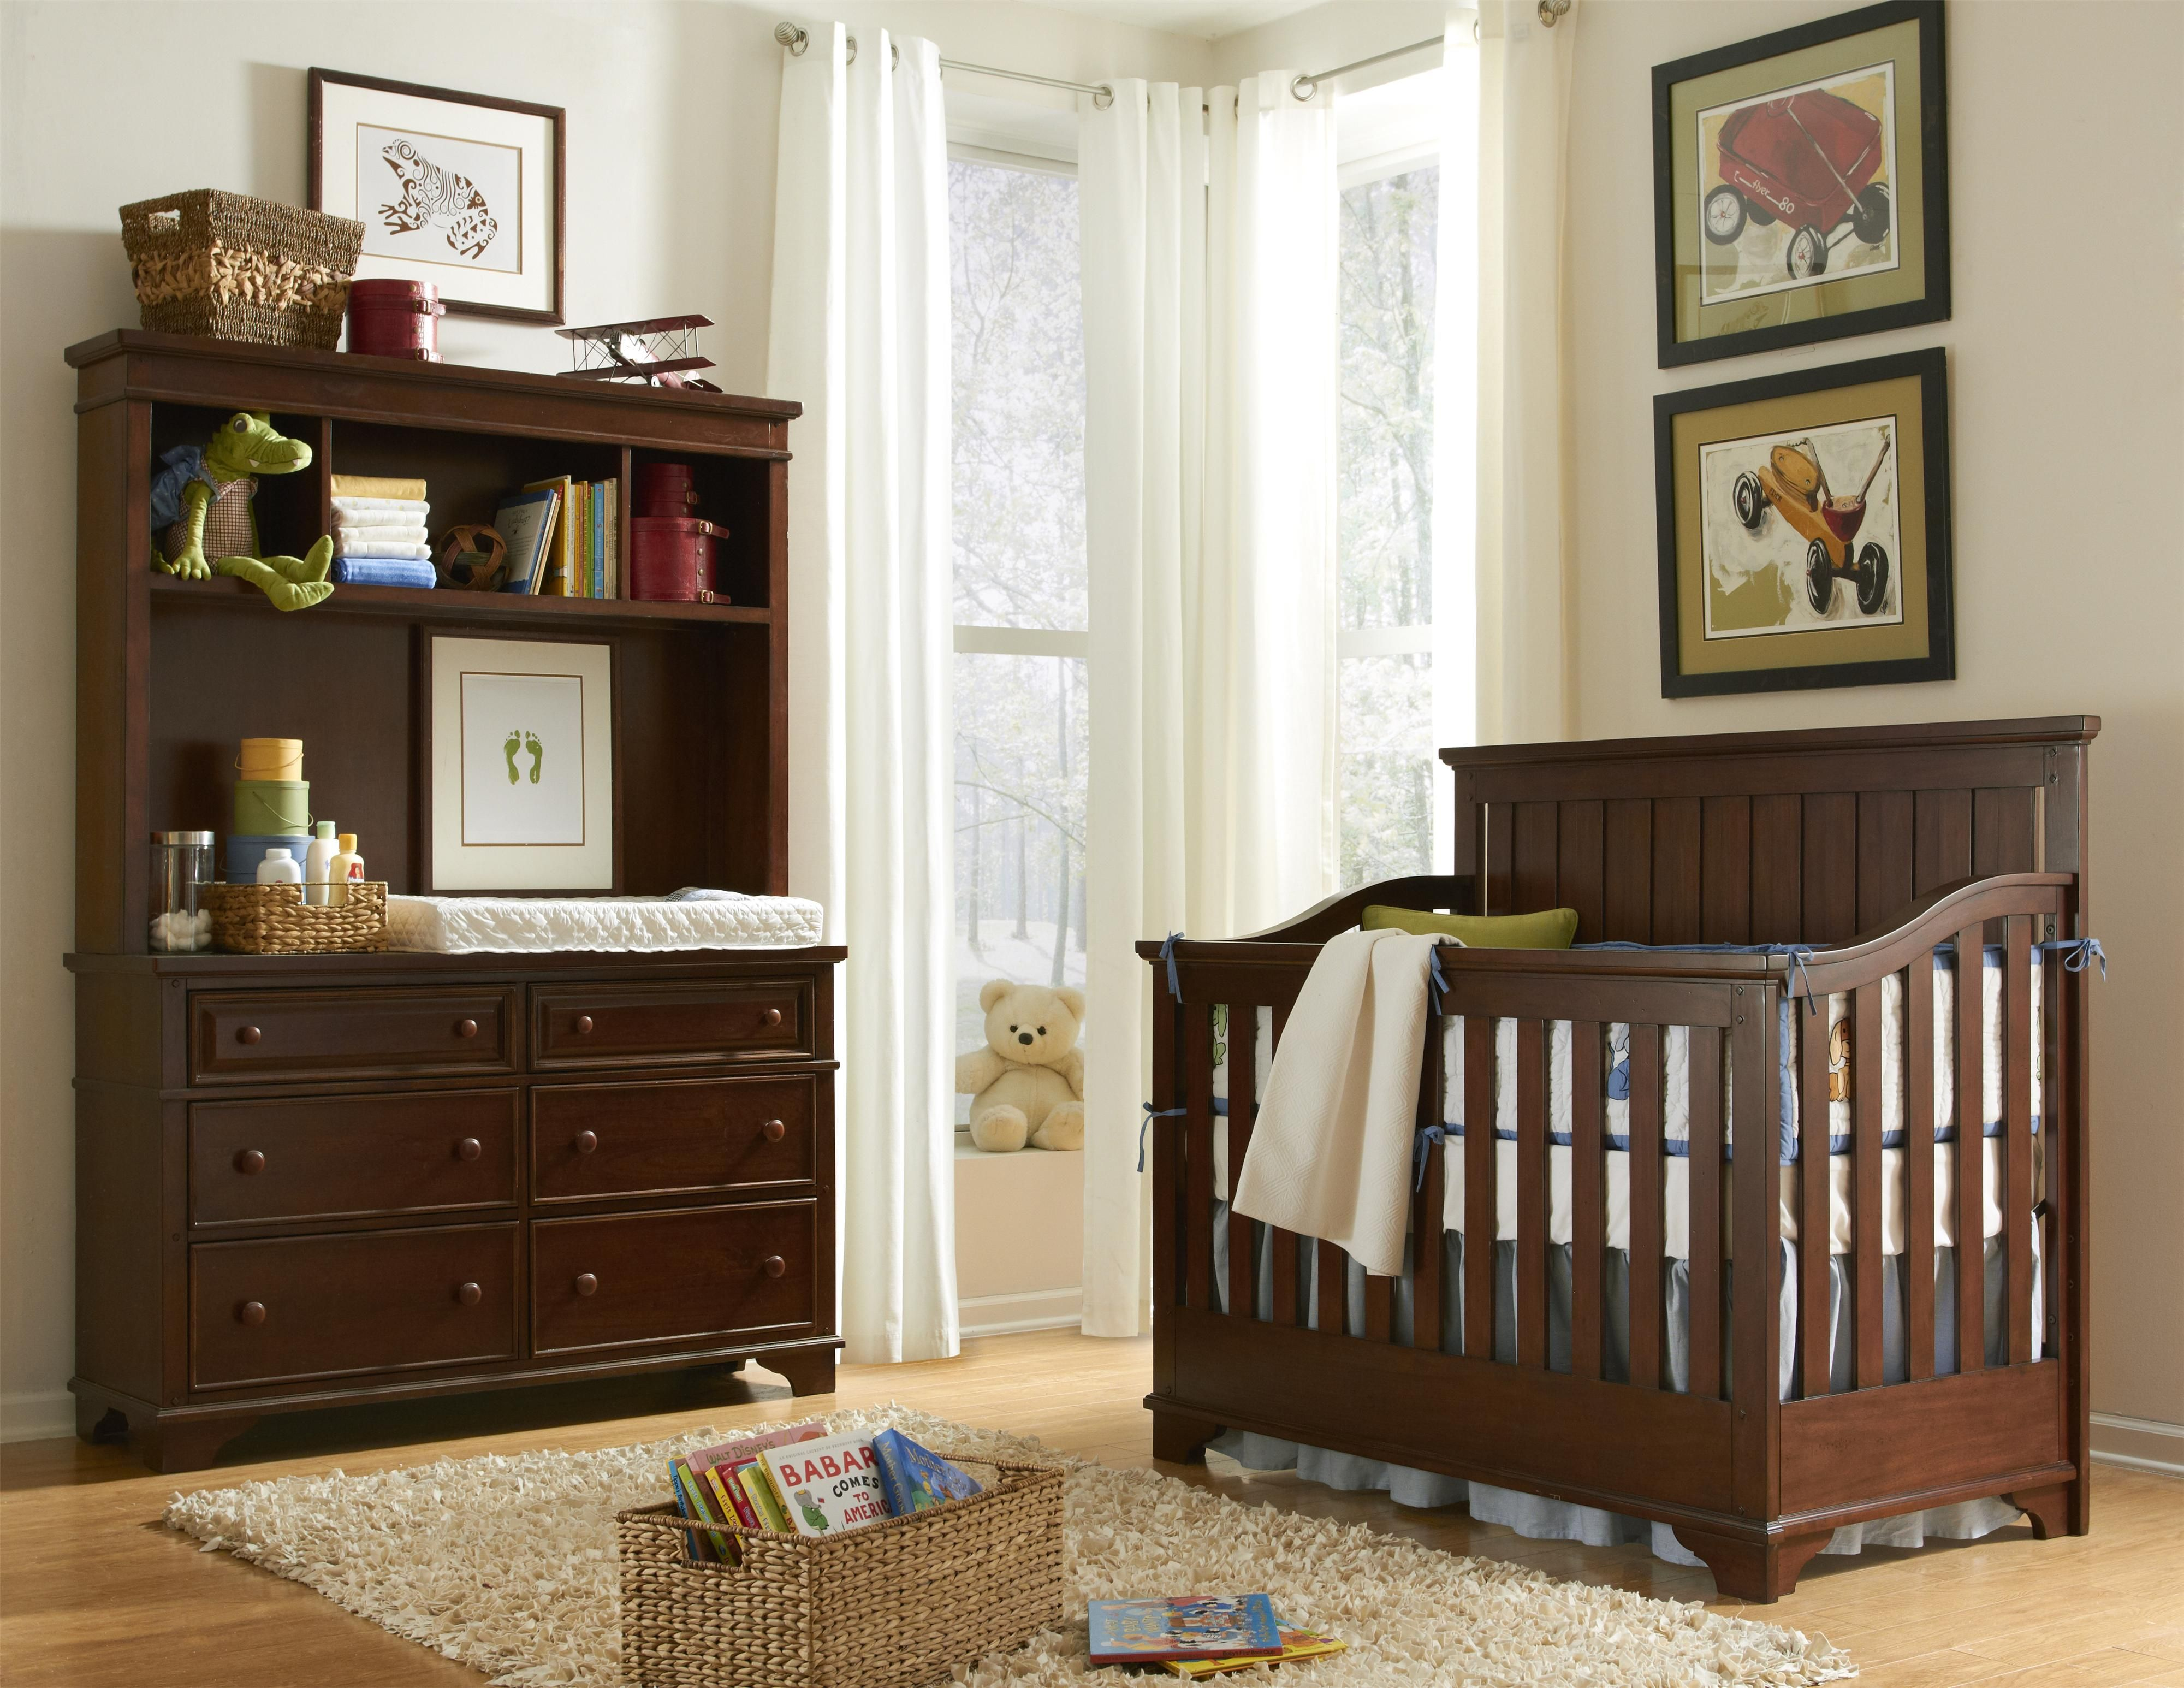 Legacy classic kids furniture dawsons ridge kids collection featuring convertible crib with bracket feet and slatted sides babysroom